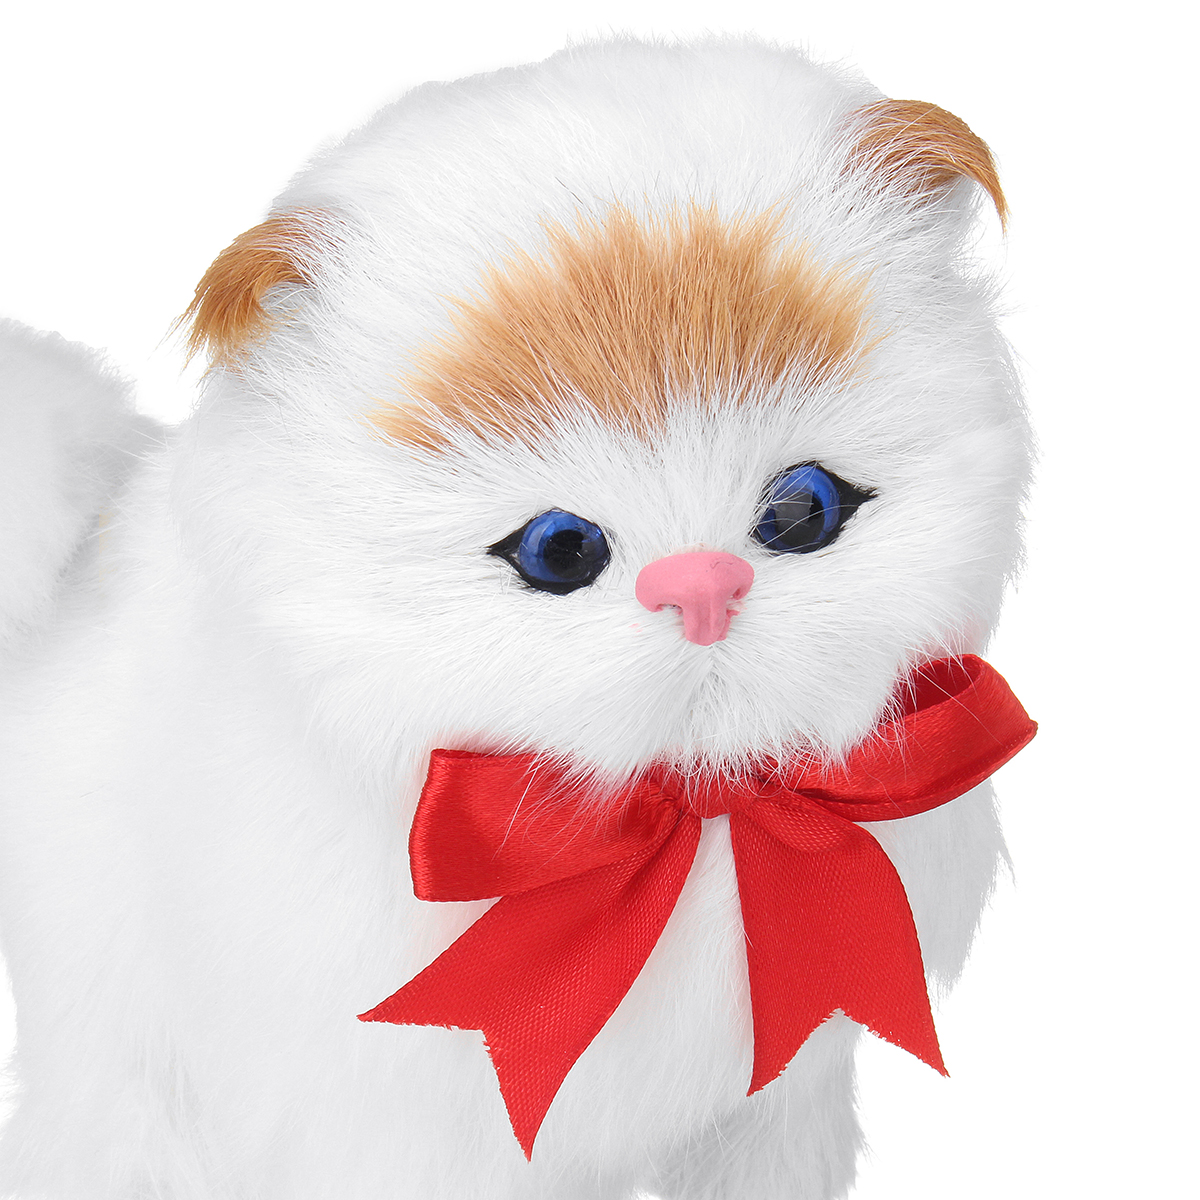 Cat Plush Toy White Cat Plush Toy Realistic Stuffed Plush Toy Animal Soft Doll Kid Gift Cuddle